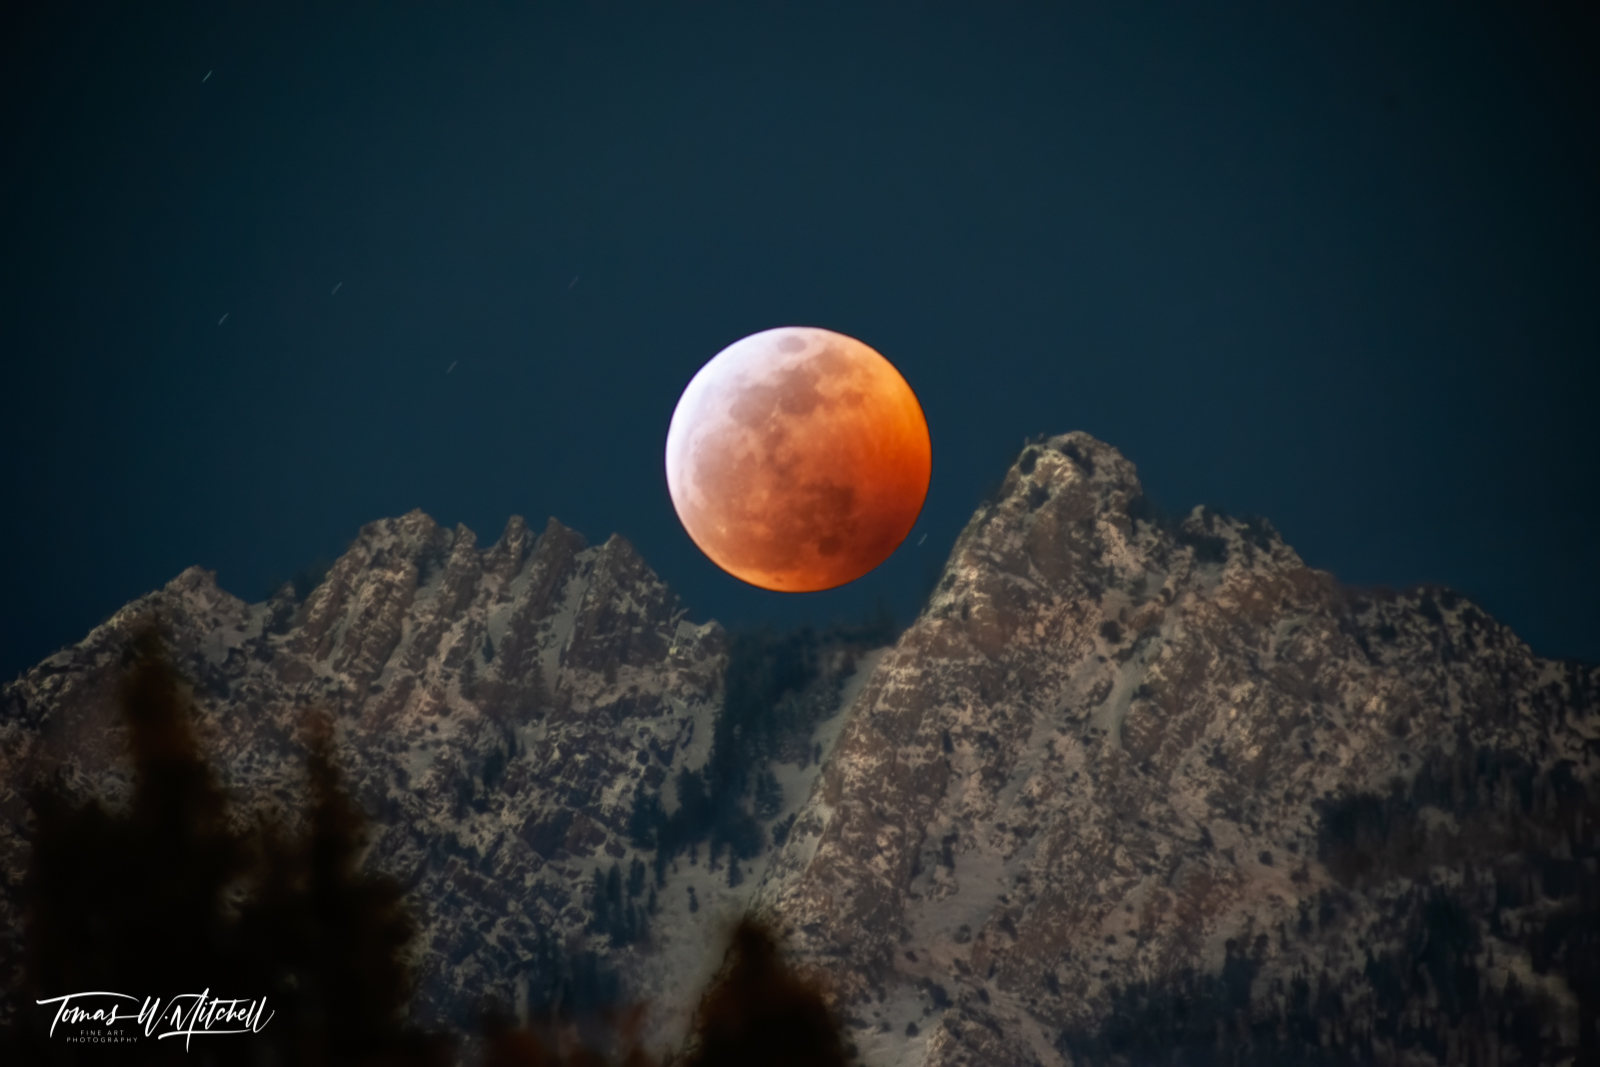 limited edition, fine art, prints, mount olympus, utah, lunar eclipse, super blood wolf moon, compilation, latin, mountain, photo